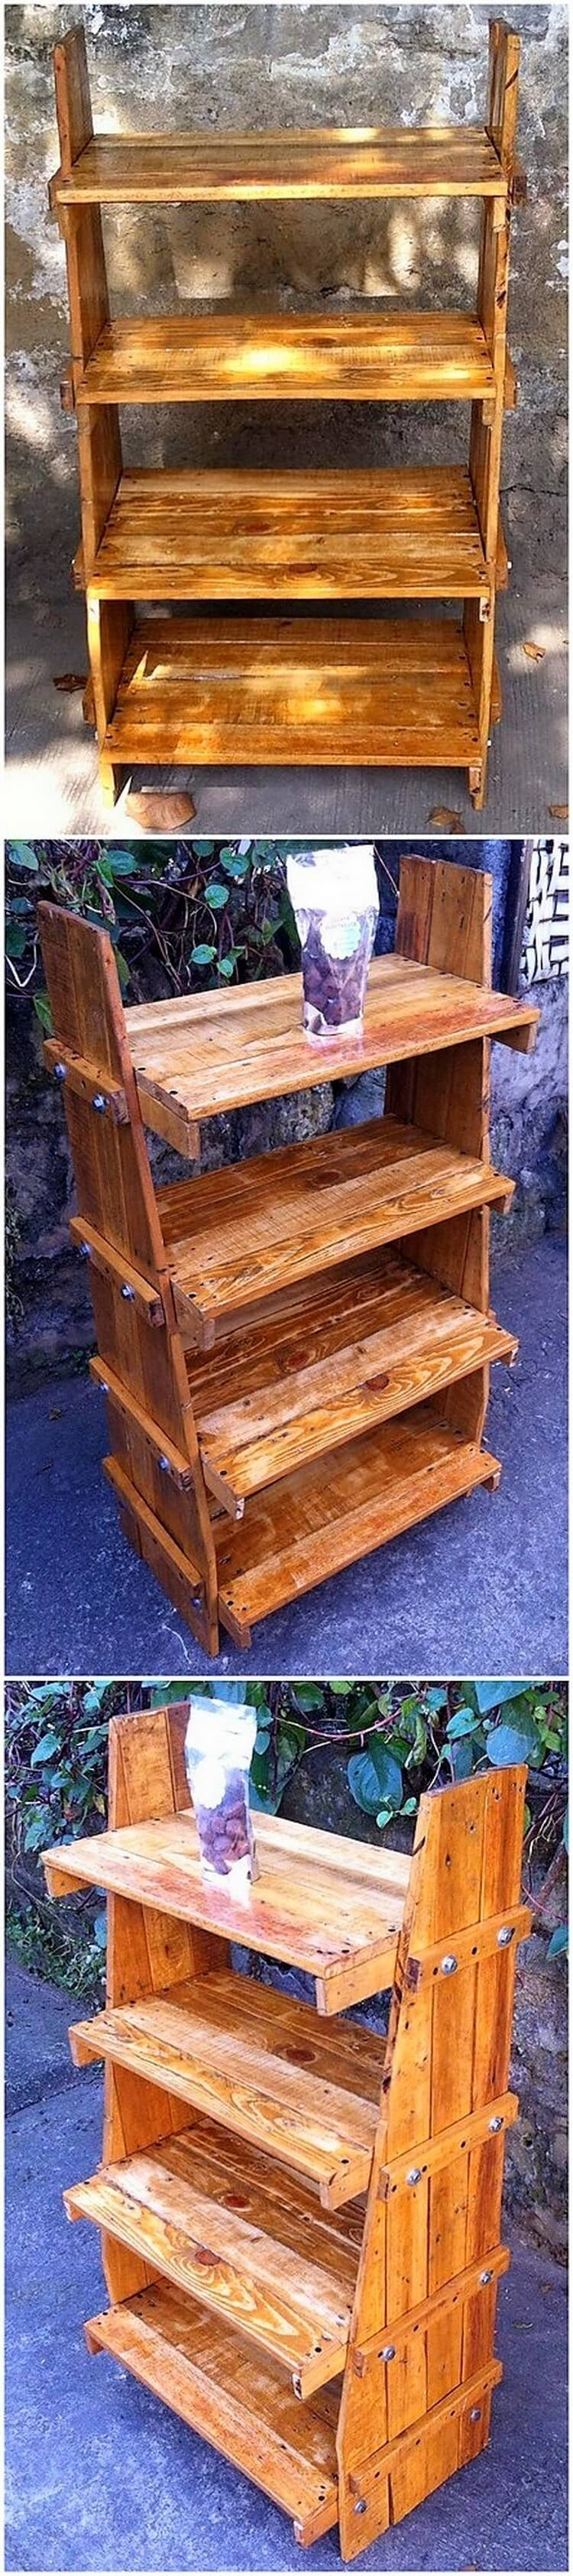 Wood Pallet Shelving Stand